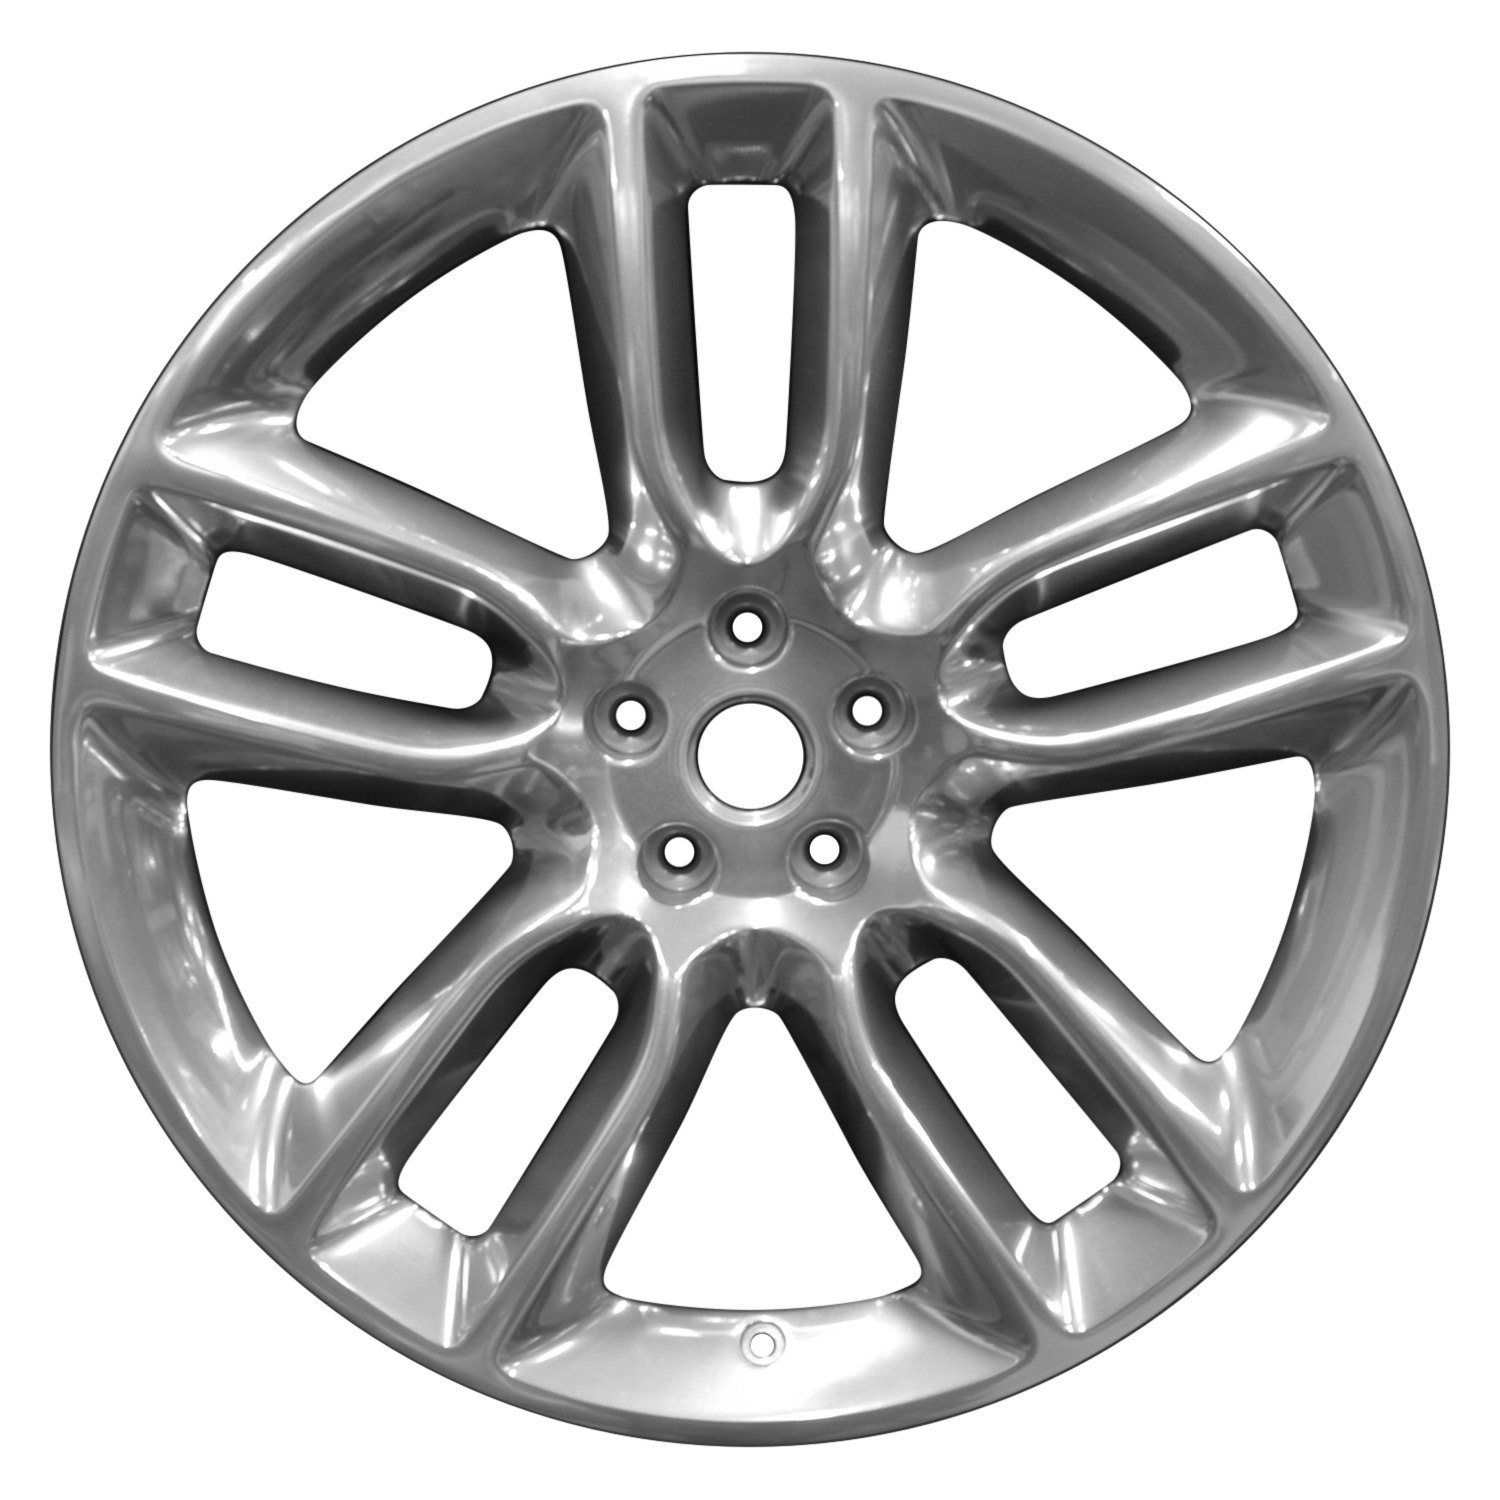 Perfection Wheel Wao  Full Pol Ford Edge   Double Spokes Full Polished Factory Alloy Wheel